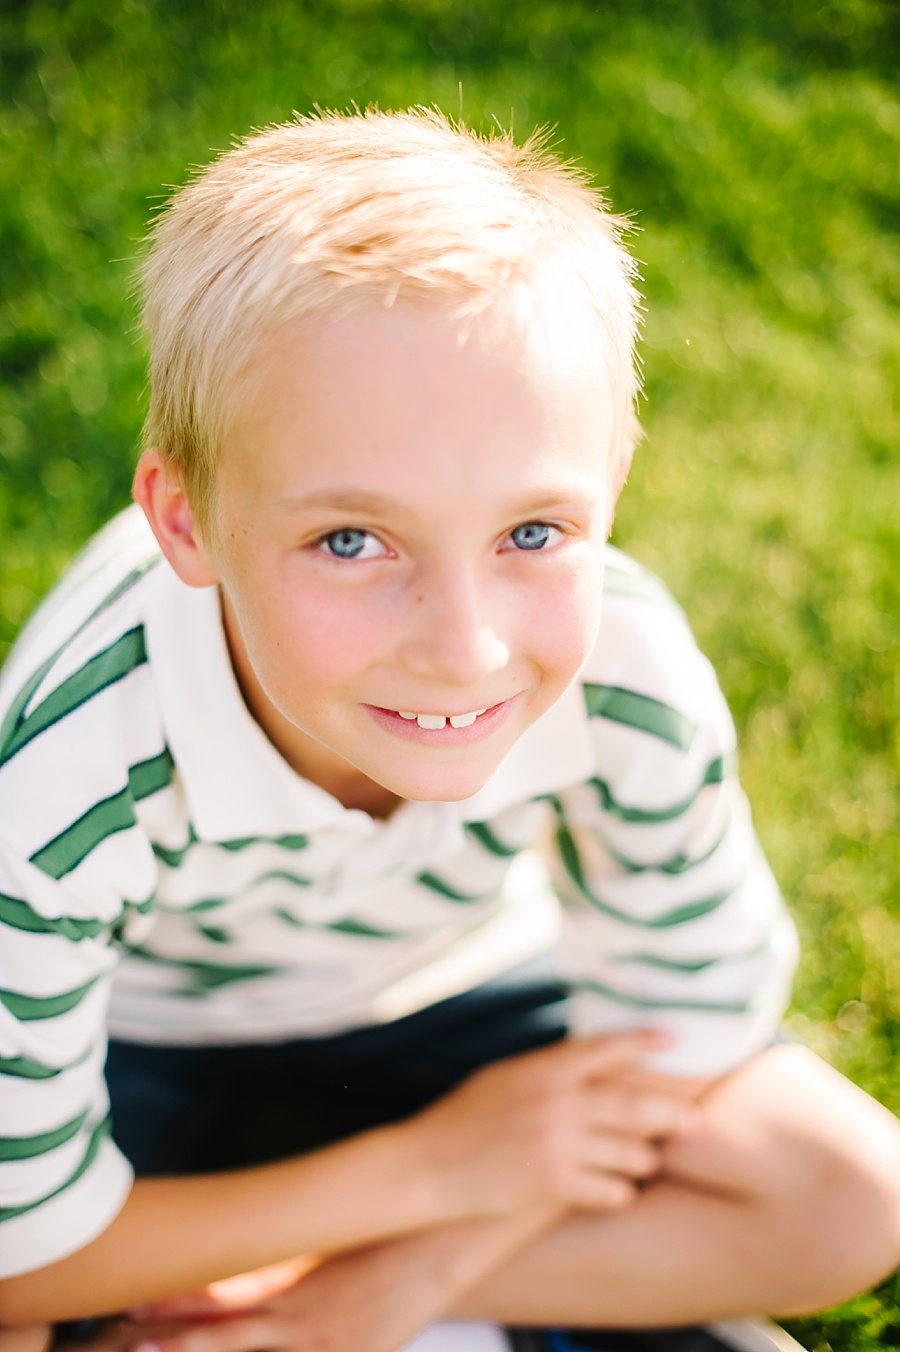 Murray Utah Family Photographer Ali Sumsion 037